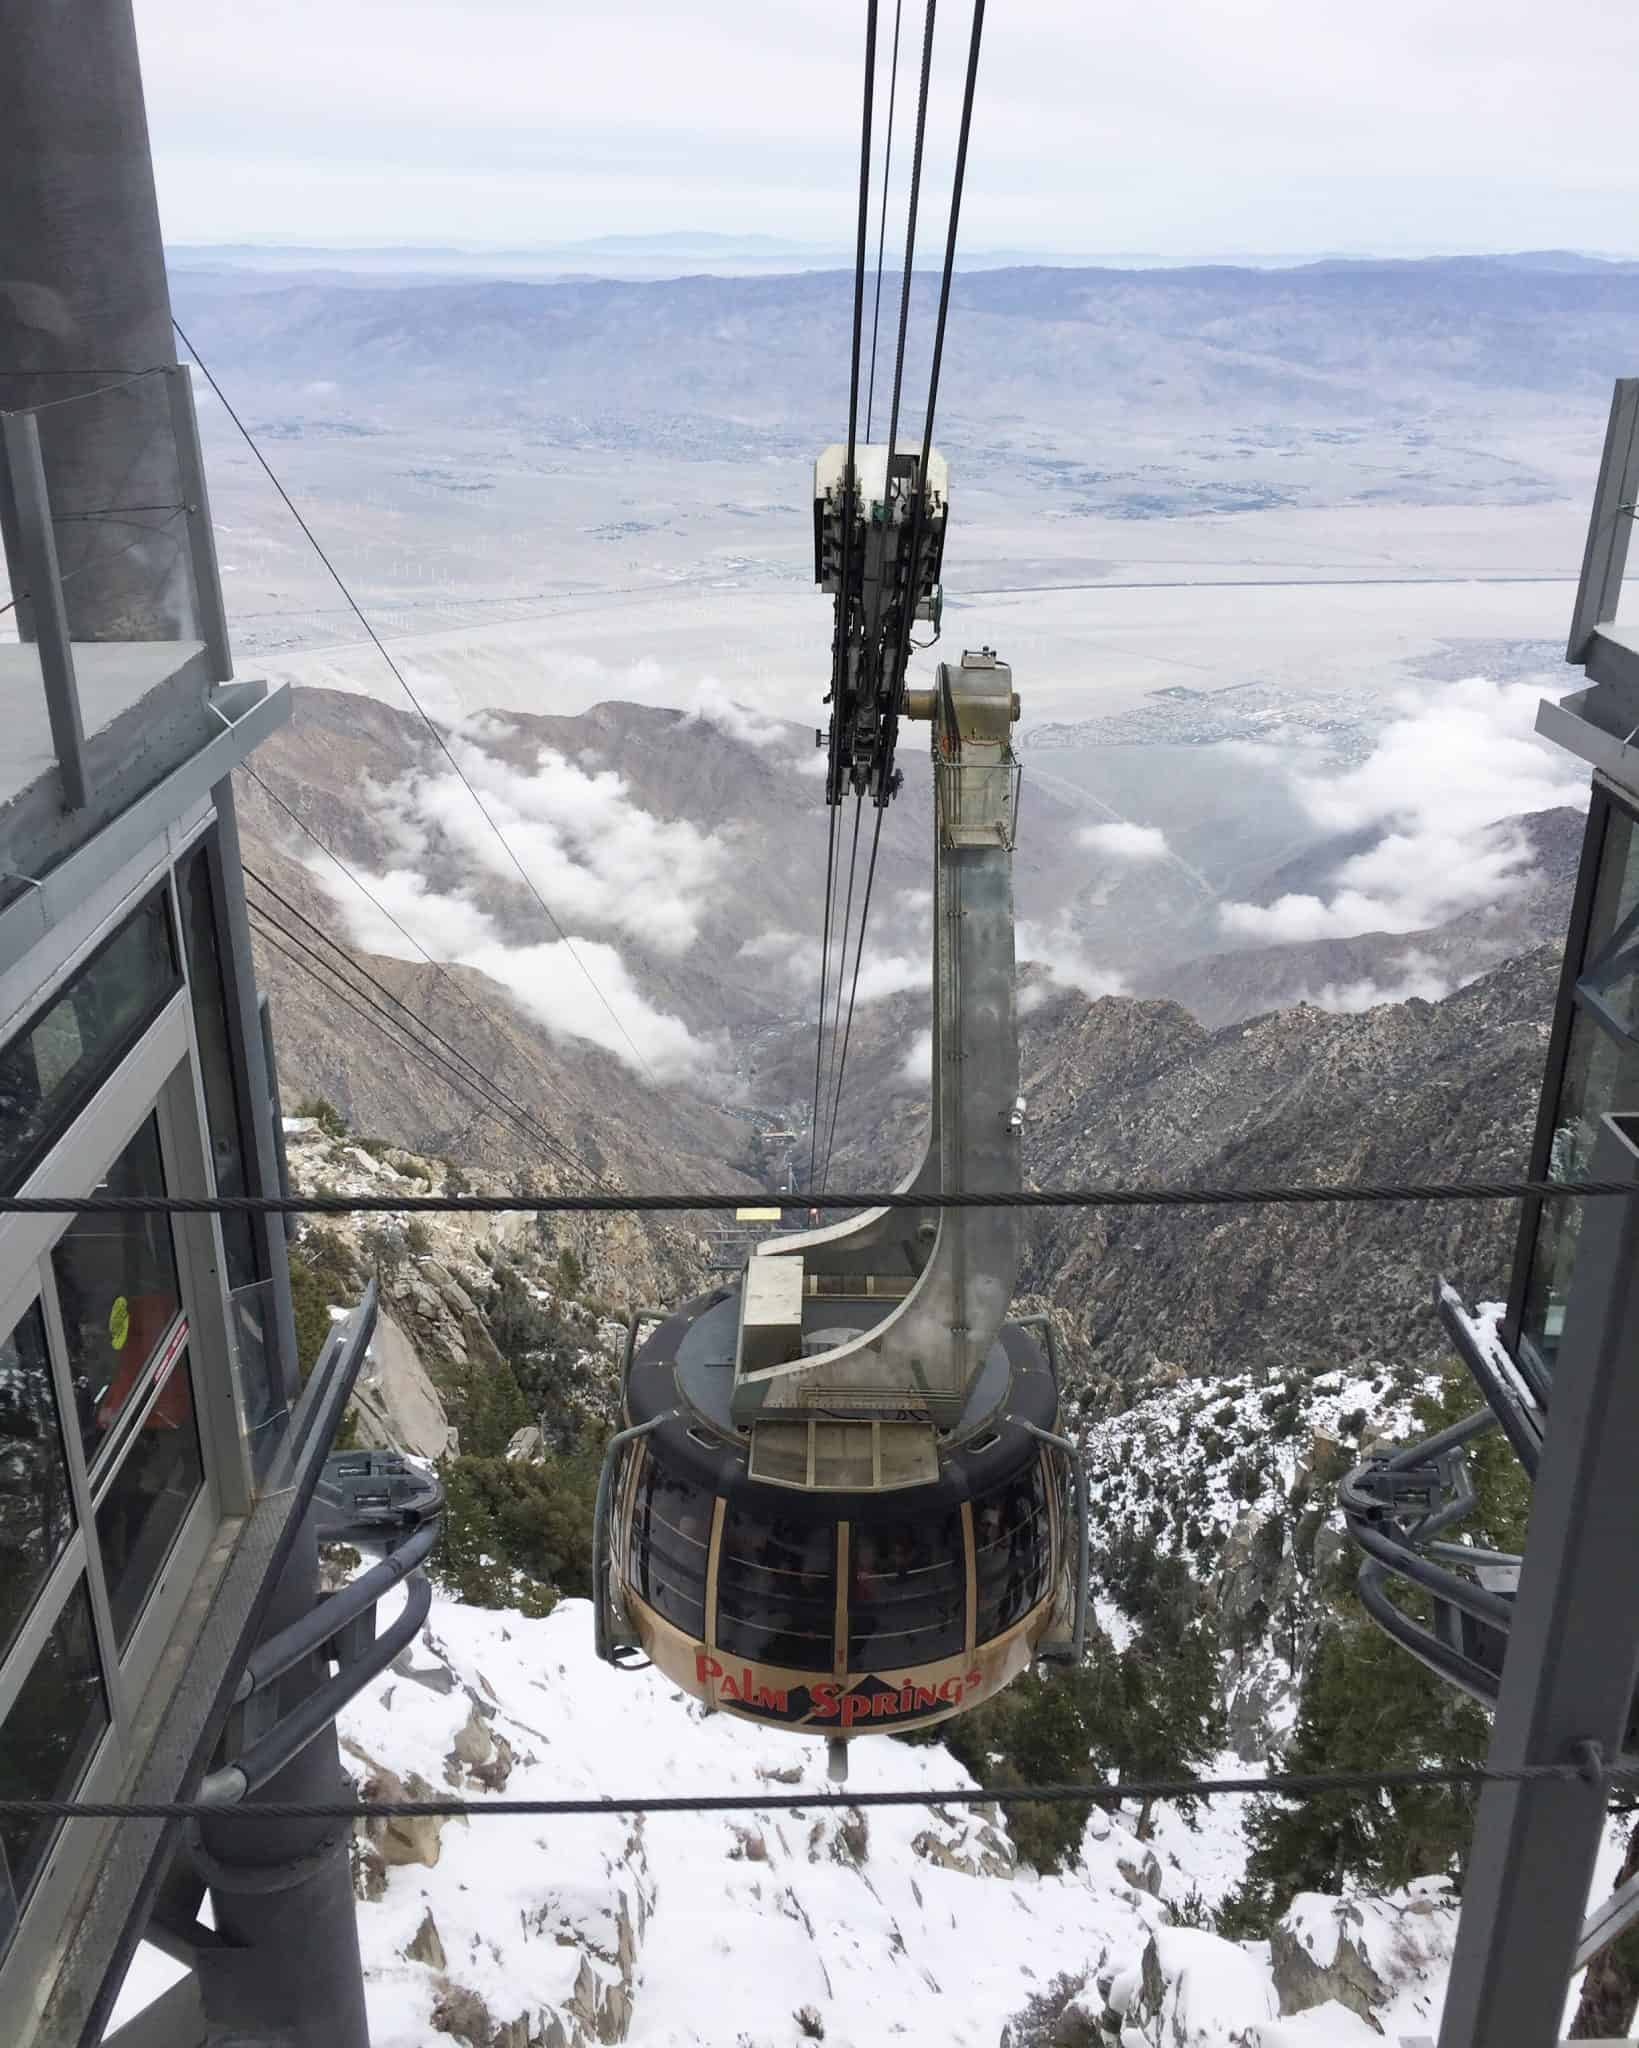 Riding the Palm Springs Aerial Tramway – Have Your Head in the Clouds